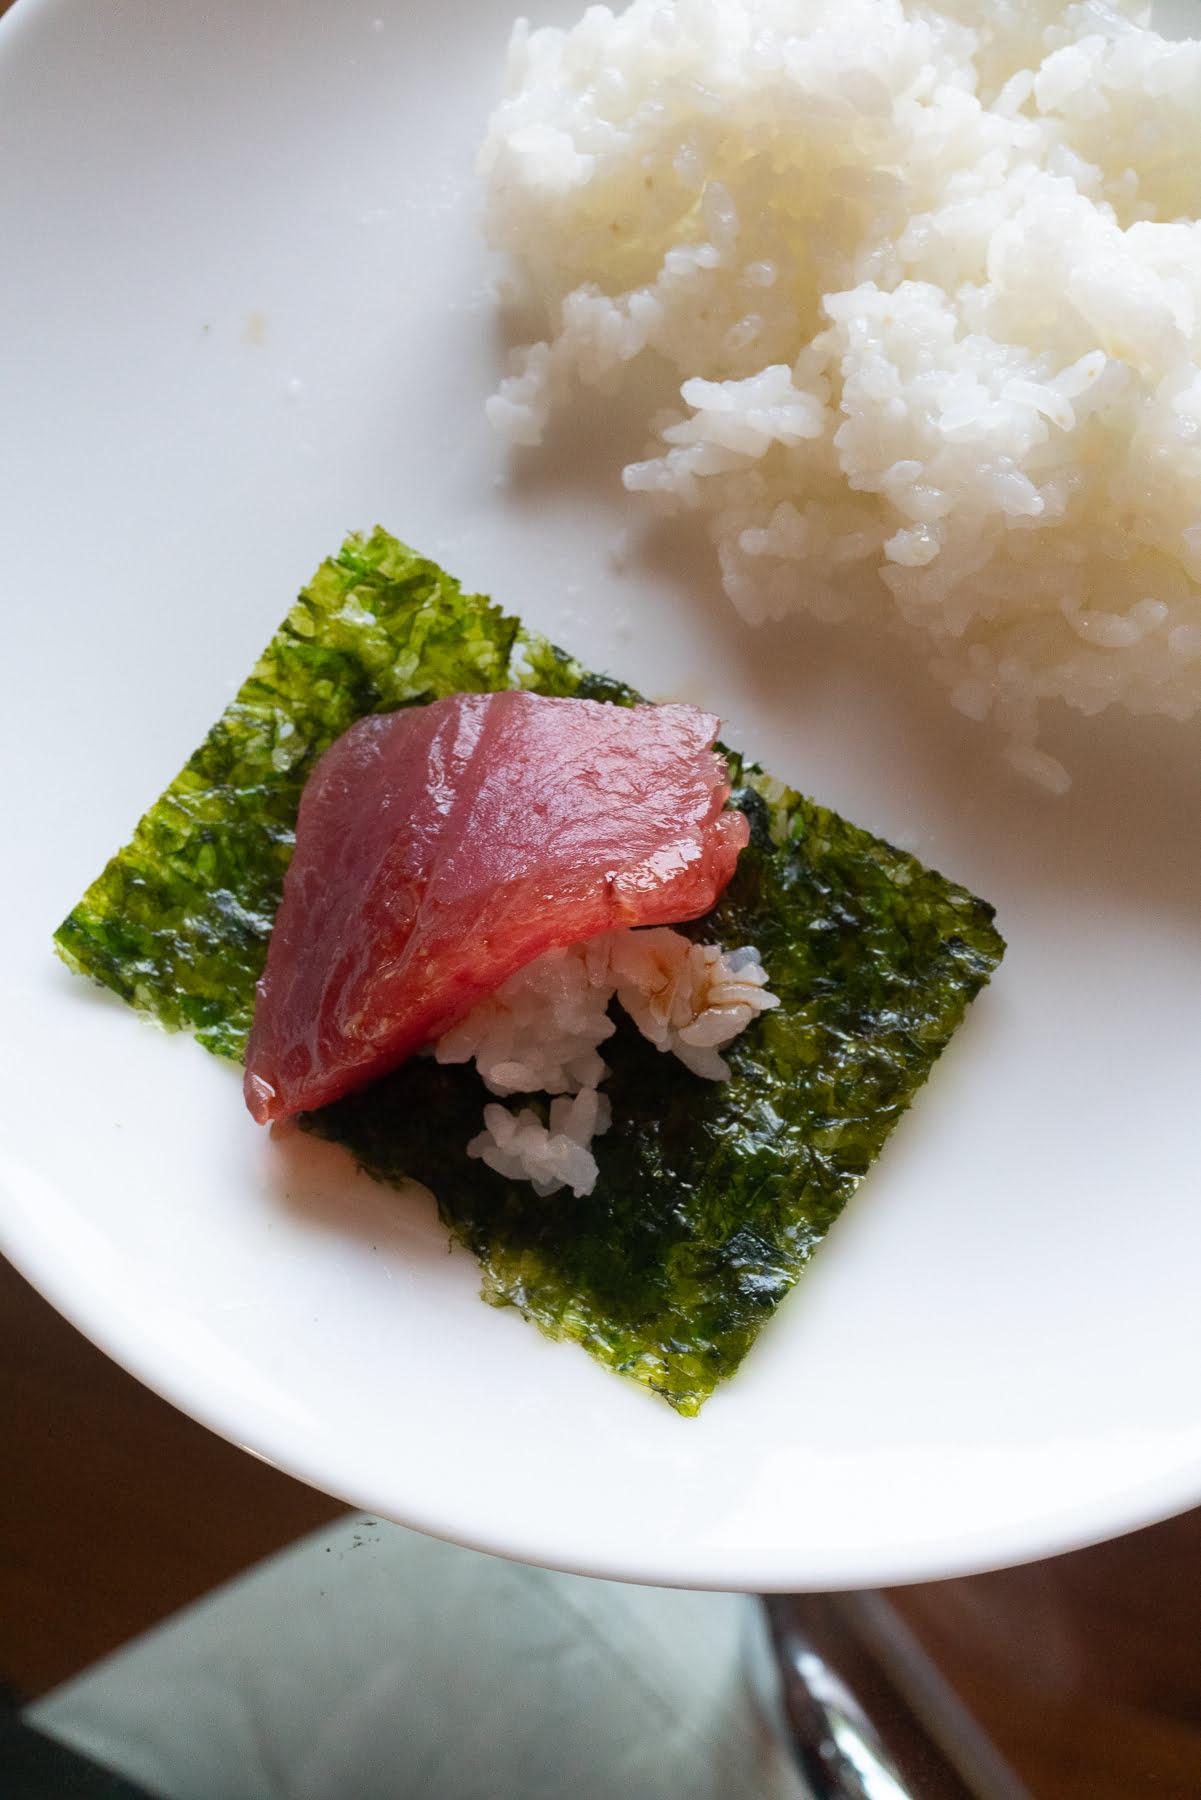 A piece of seaweed topped with sushi rice and ahi sashimi to make homemade sushi.